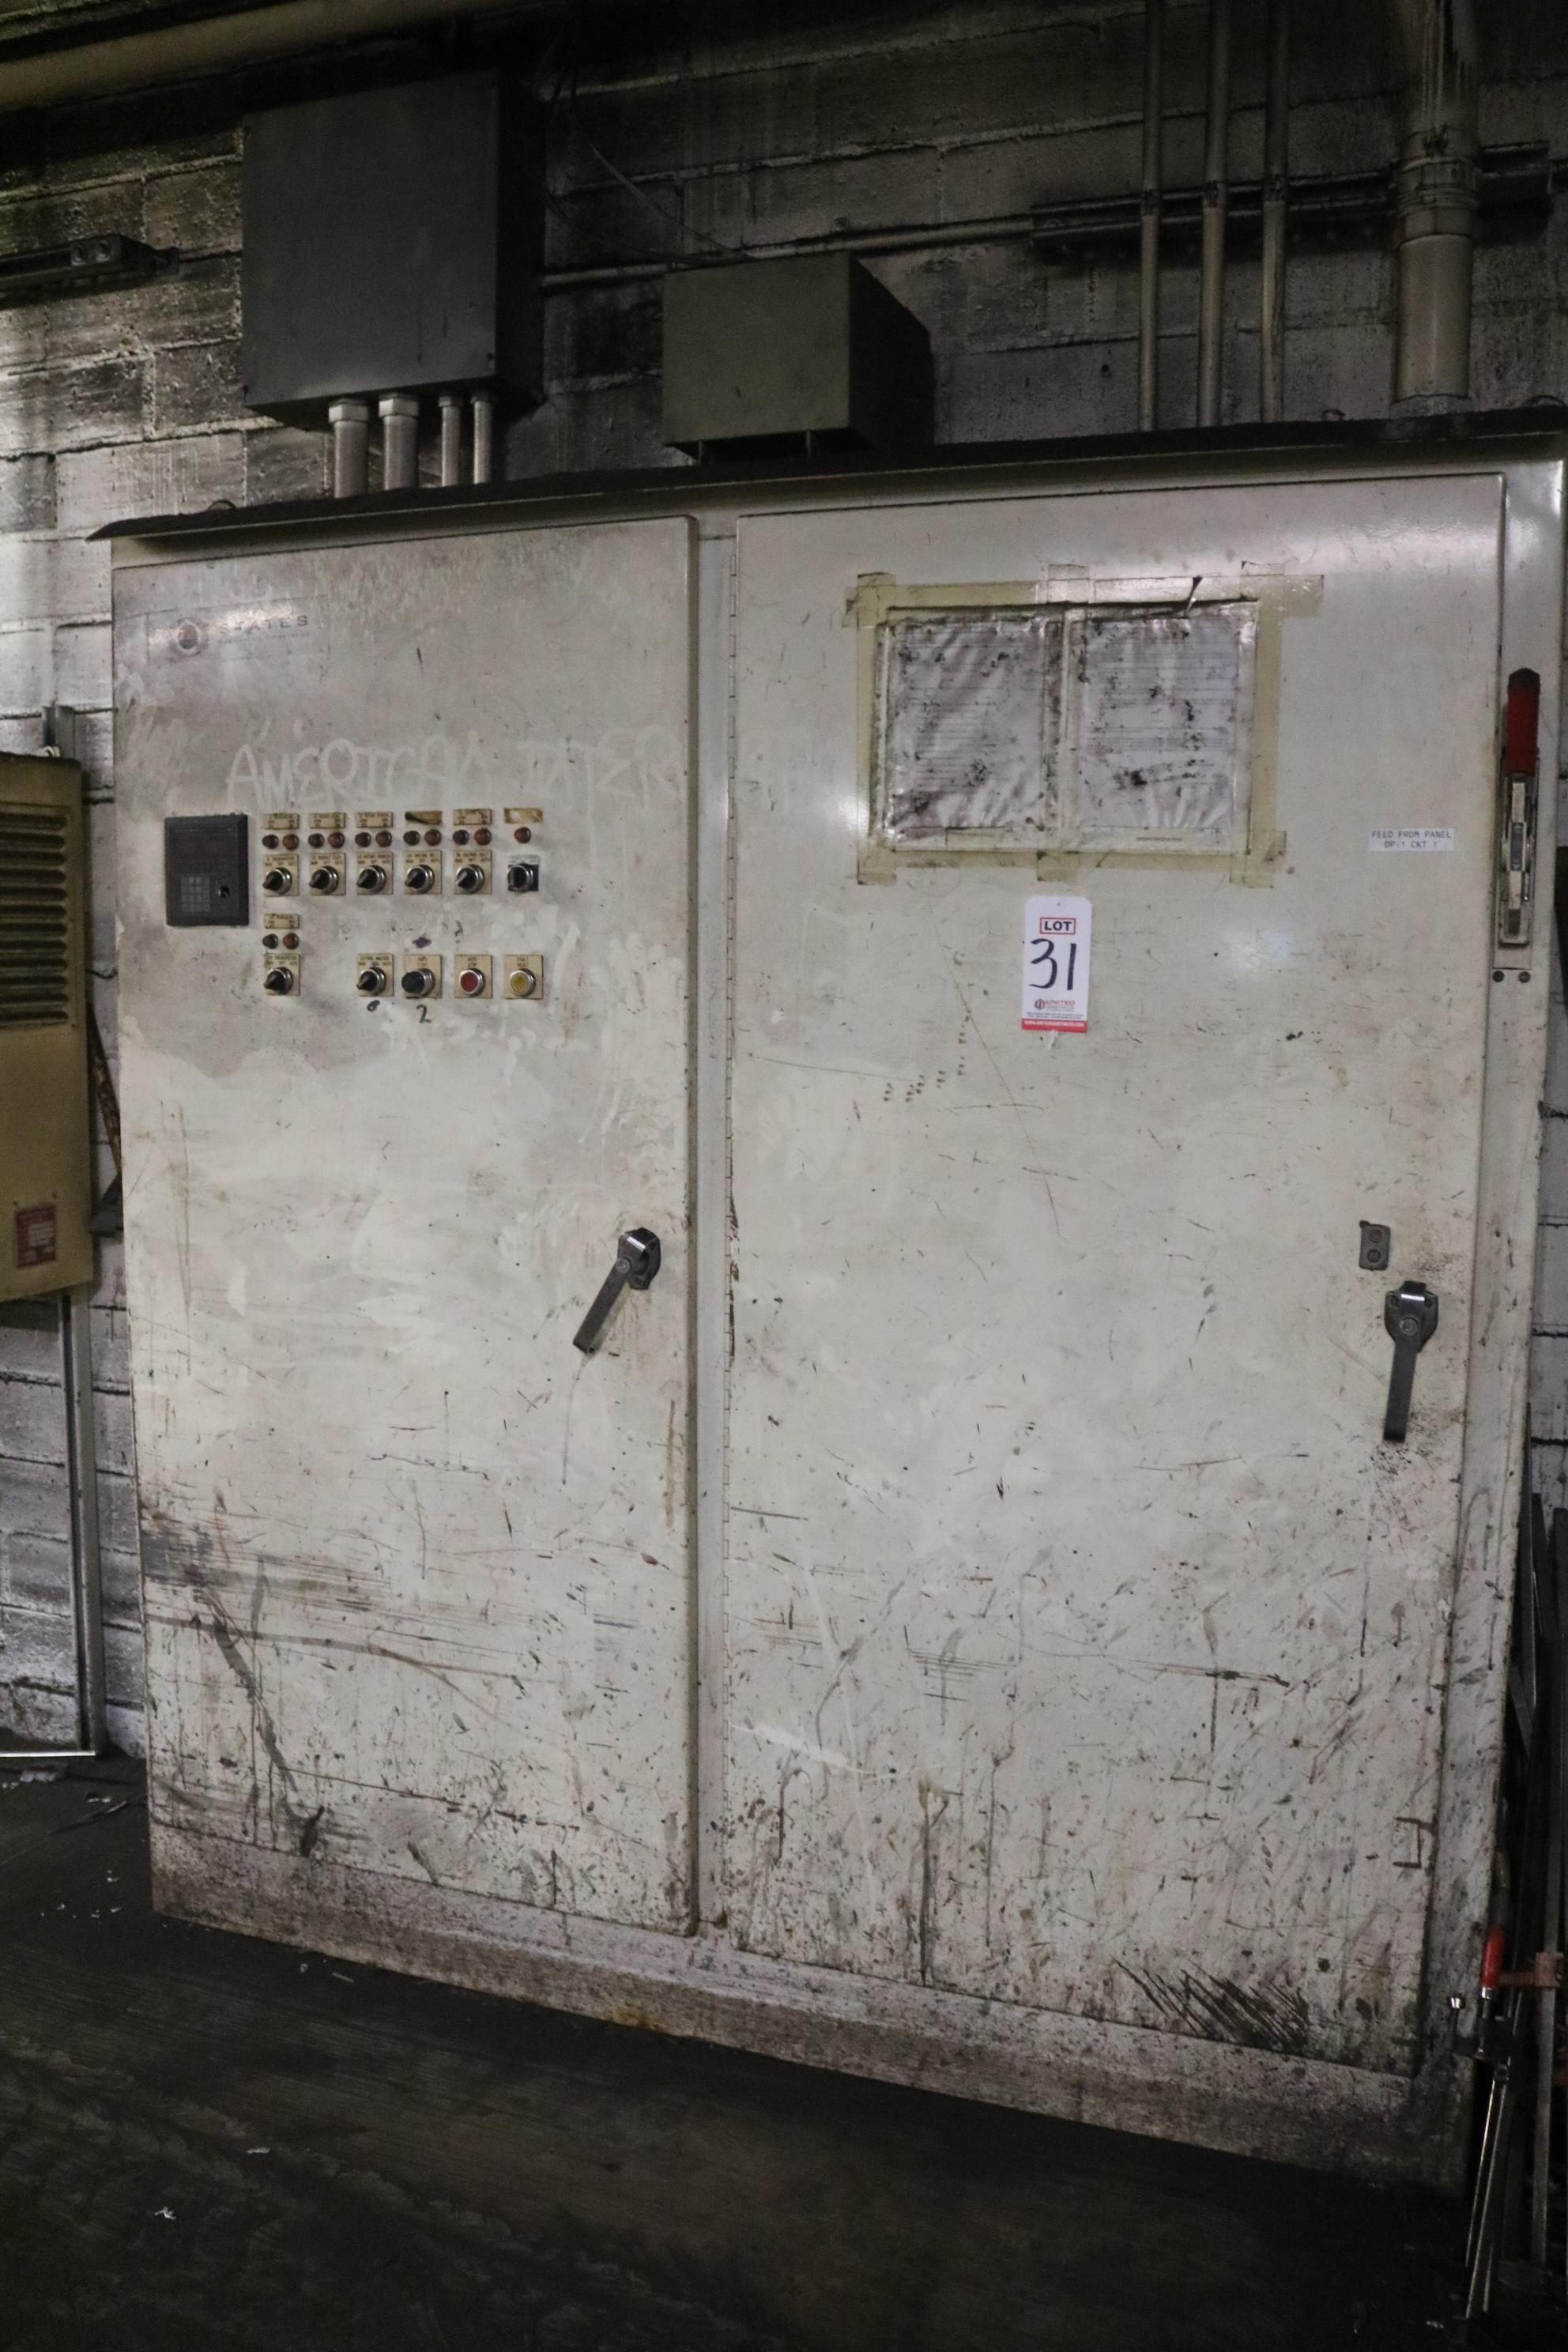 Lot 31 - 2012 STATES MODEL M2500 TWO STAGE RINGMULLER, ALLEN BRADLEY SLC5/02 PLC CONTROLS, S/N M2500-100-30-